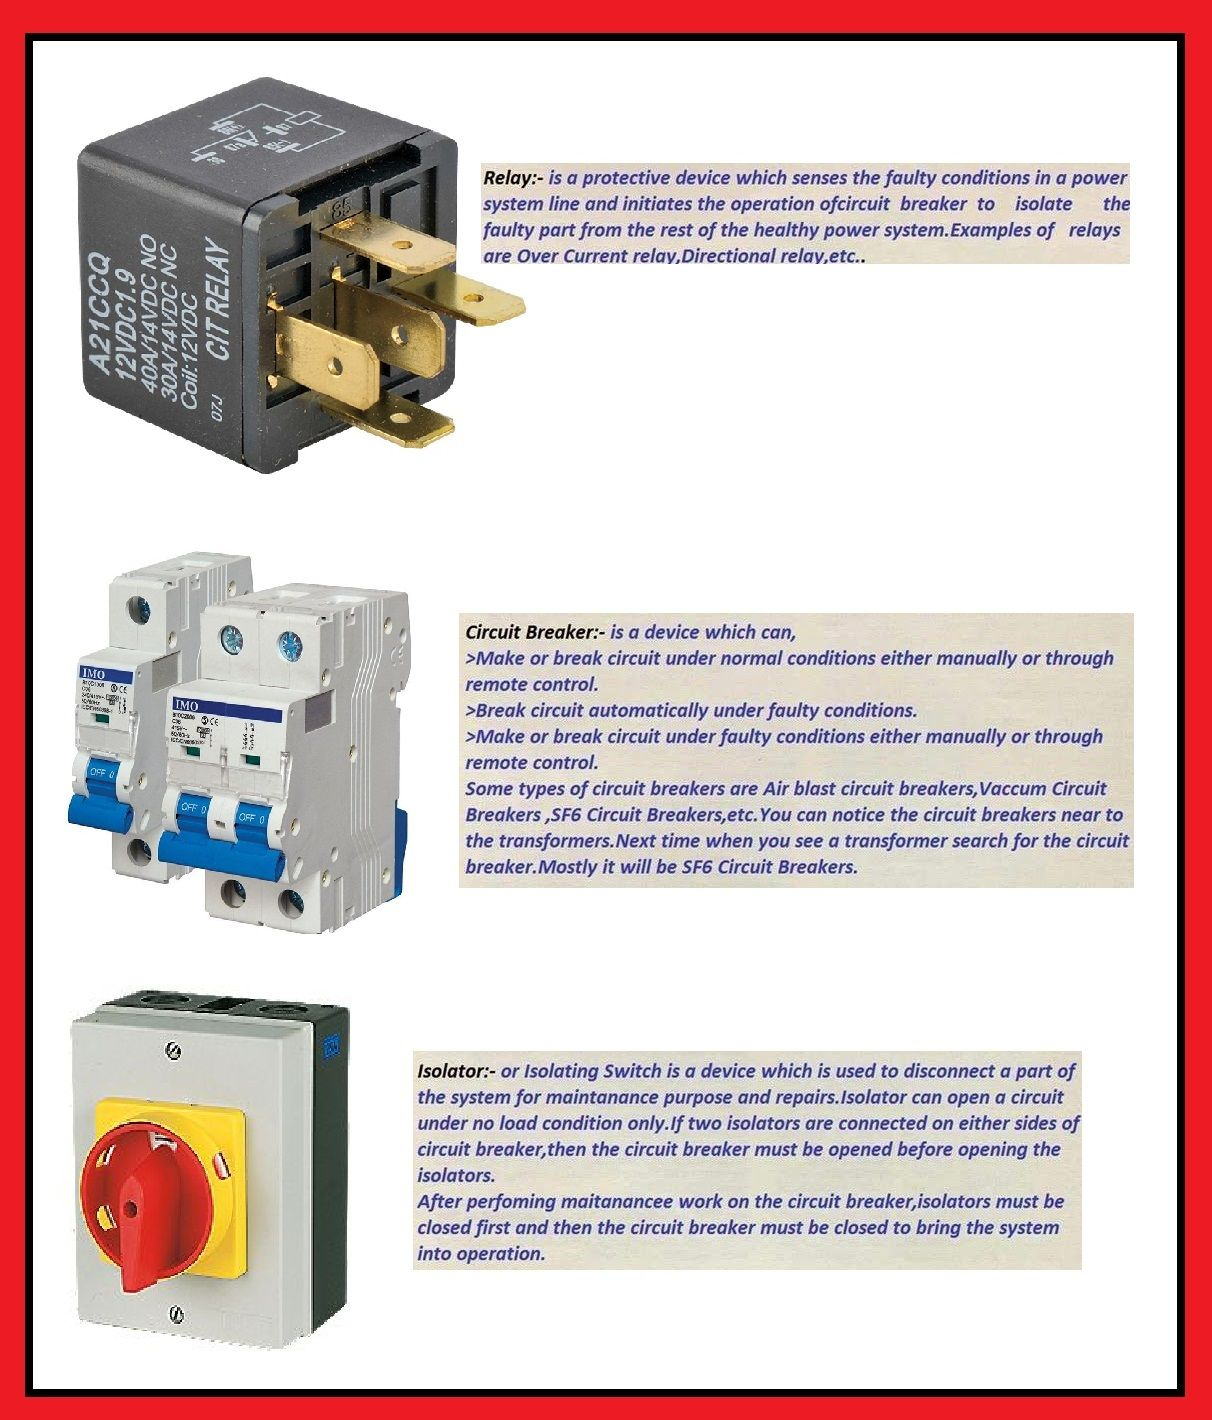 small resolution of what is the difference between relay circuit breaker and isolator elec eng world